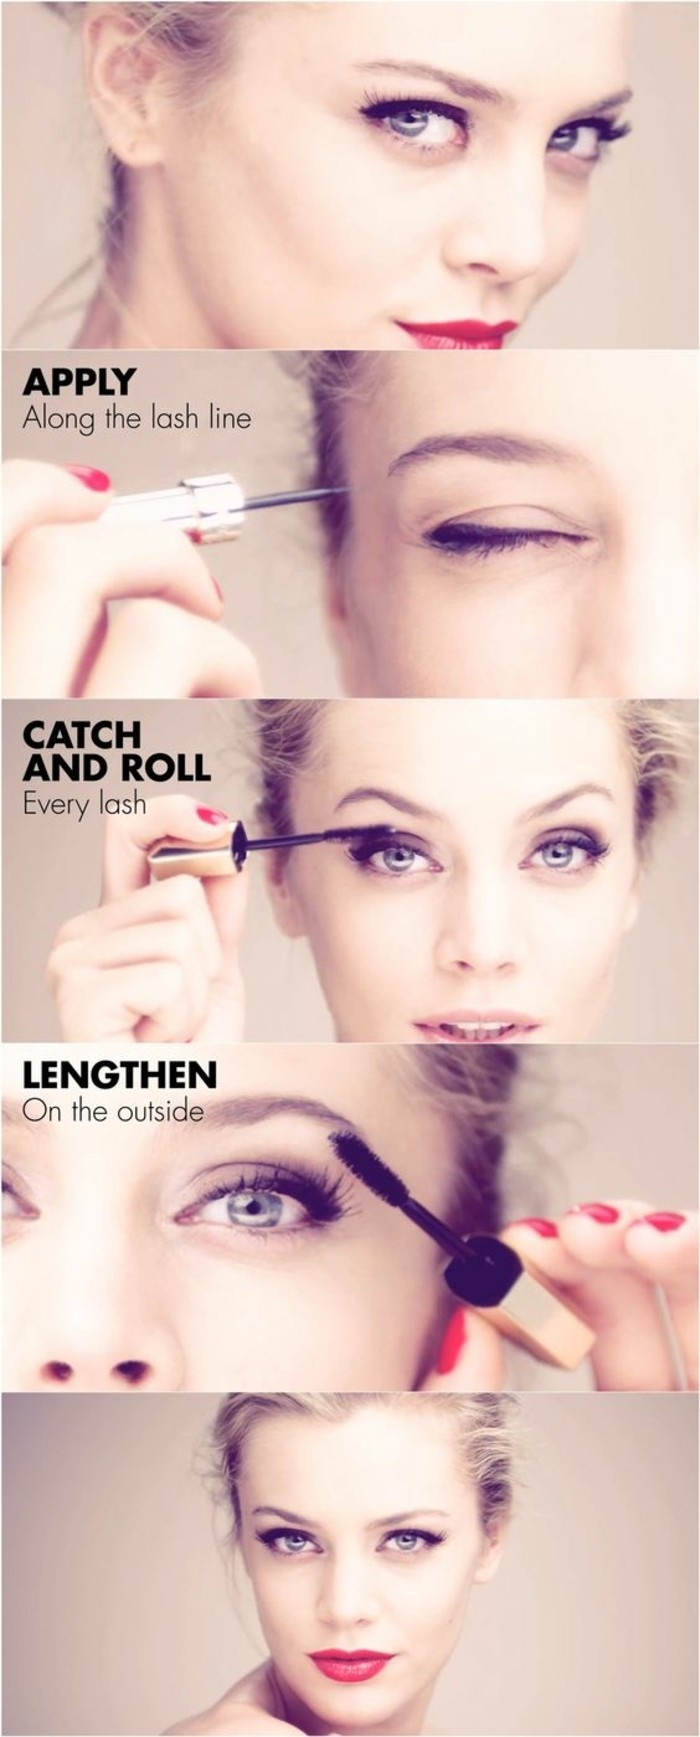 00-maquillage-yeux-ronds-maquillage-yeux-bleus-diy-maquillage-facile